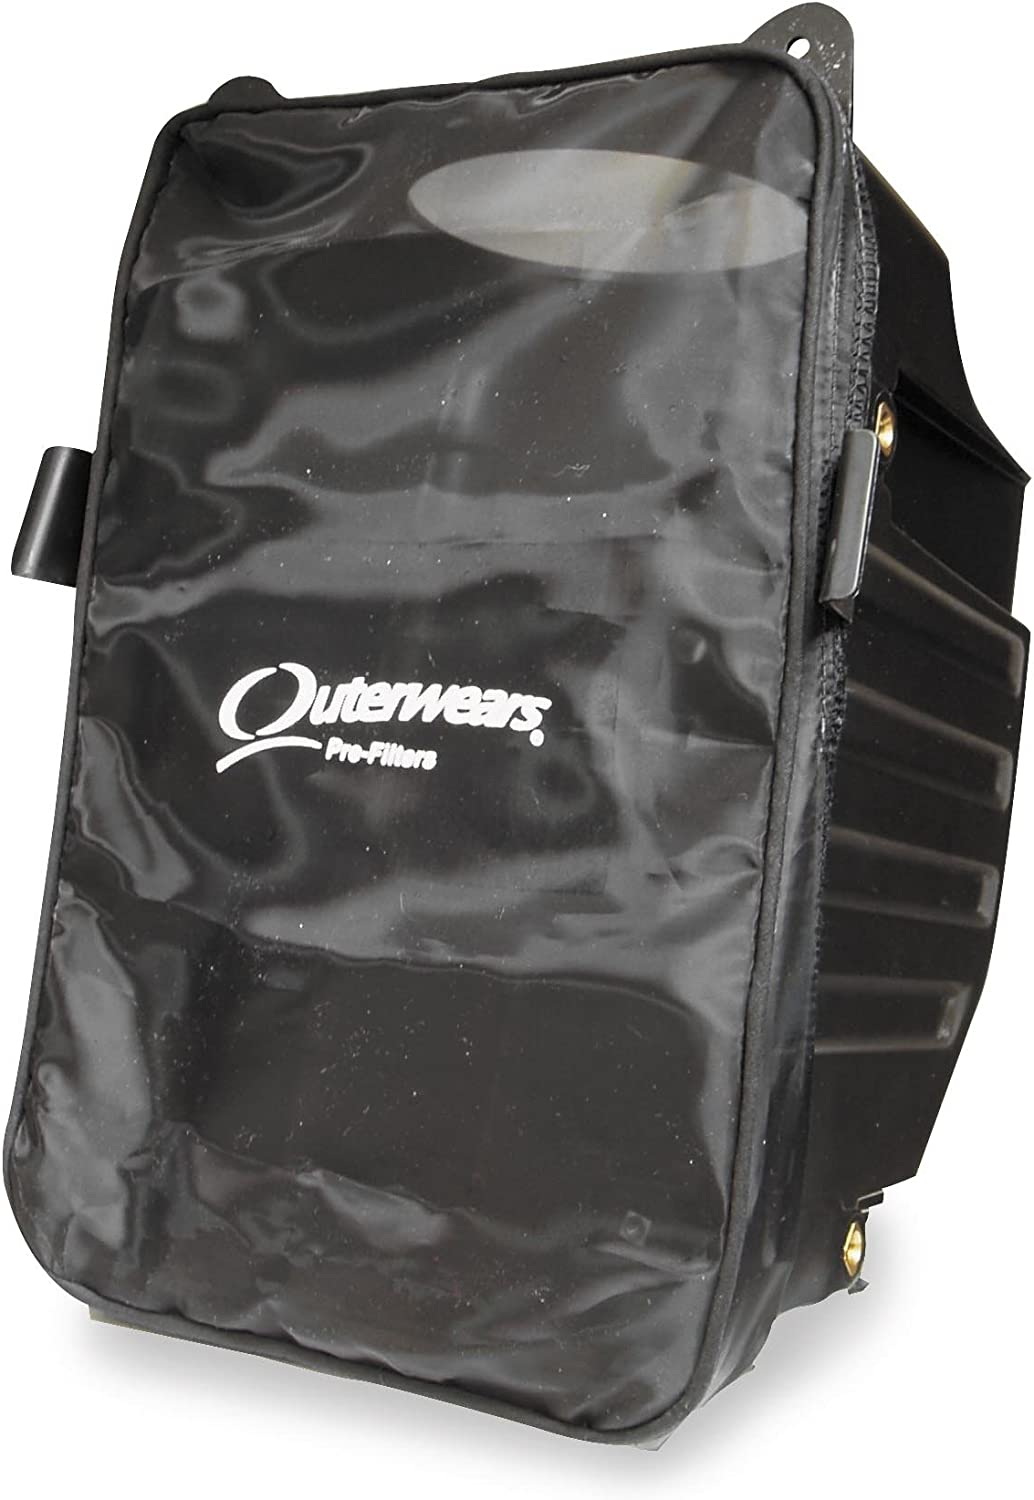 Black 20-1049-01 Outerwears Pre-Filter 3-3//4in Dia - 6in L